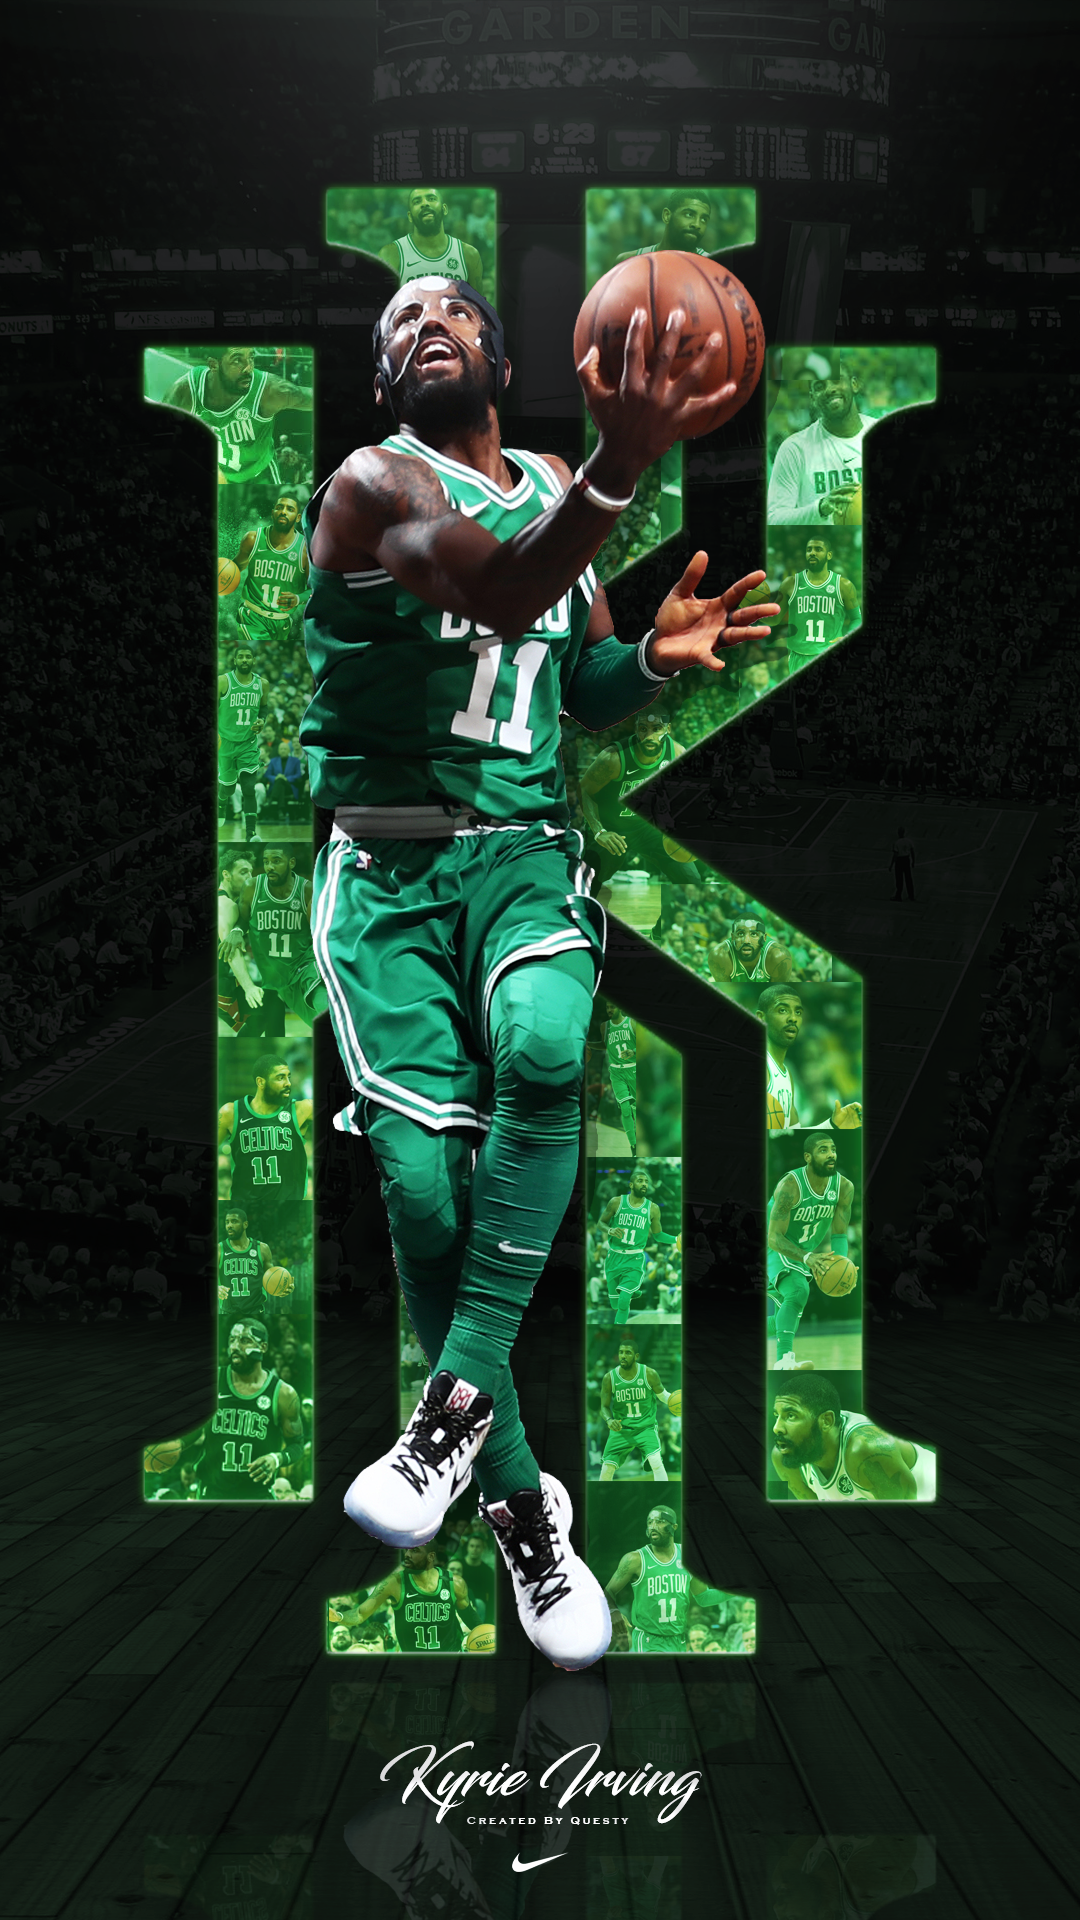 Kyrie Irving Celtics iPhone Wallpaper Created by QuestyTv on 1080x1920